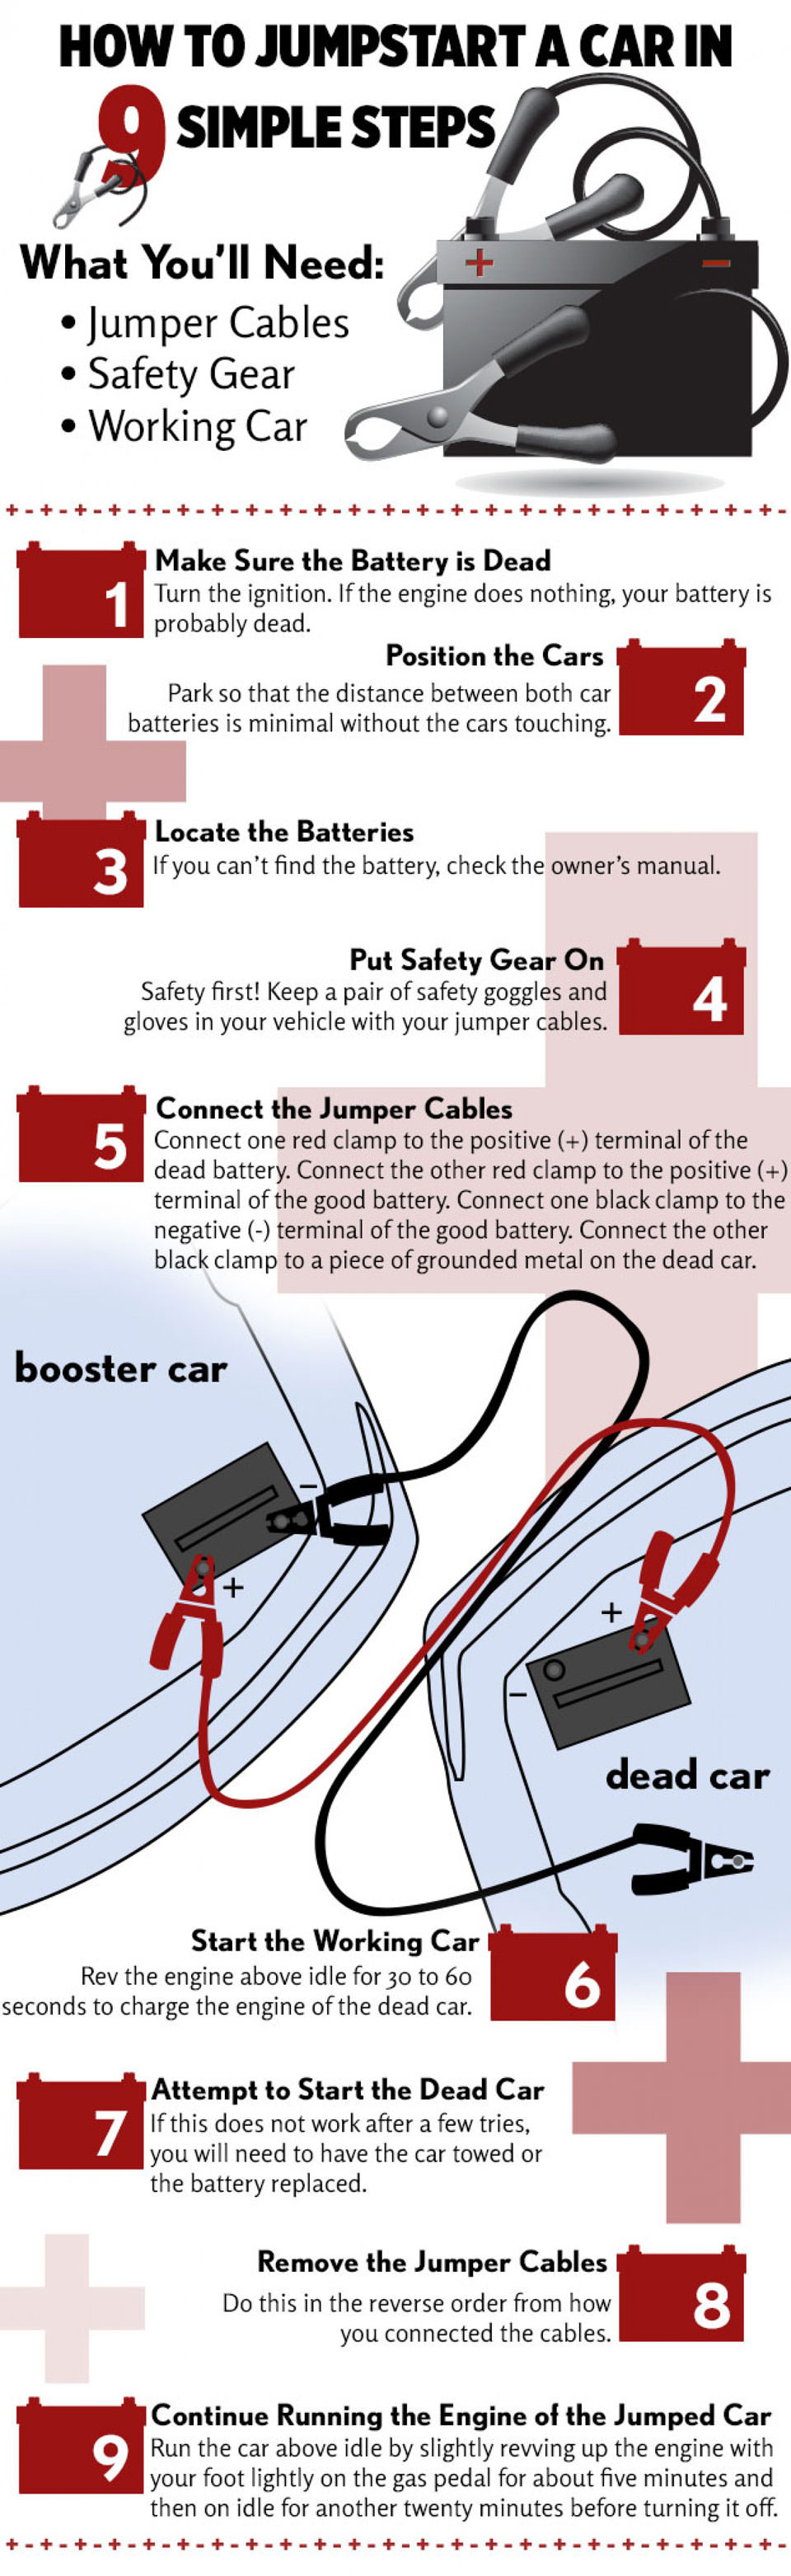 How-to-jumpstart-a-car